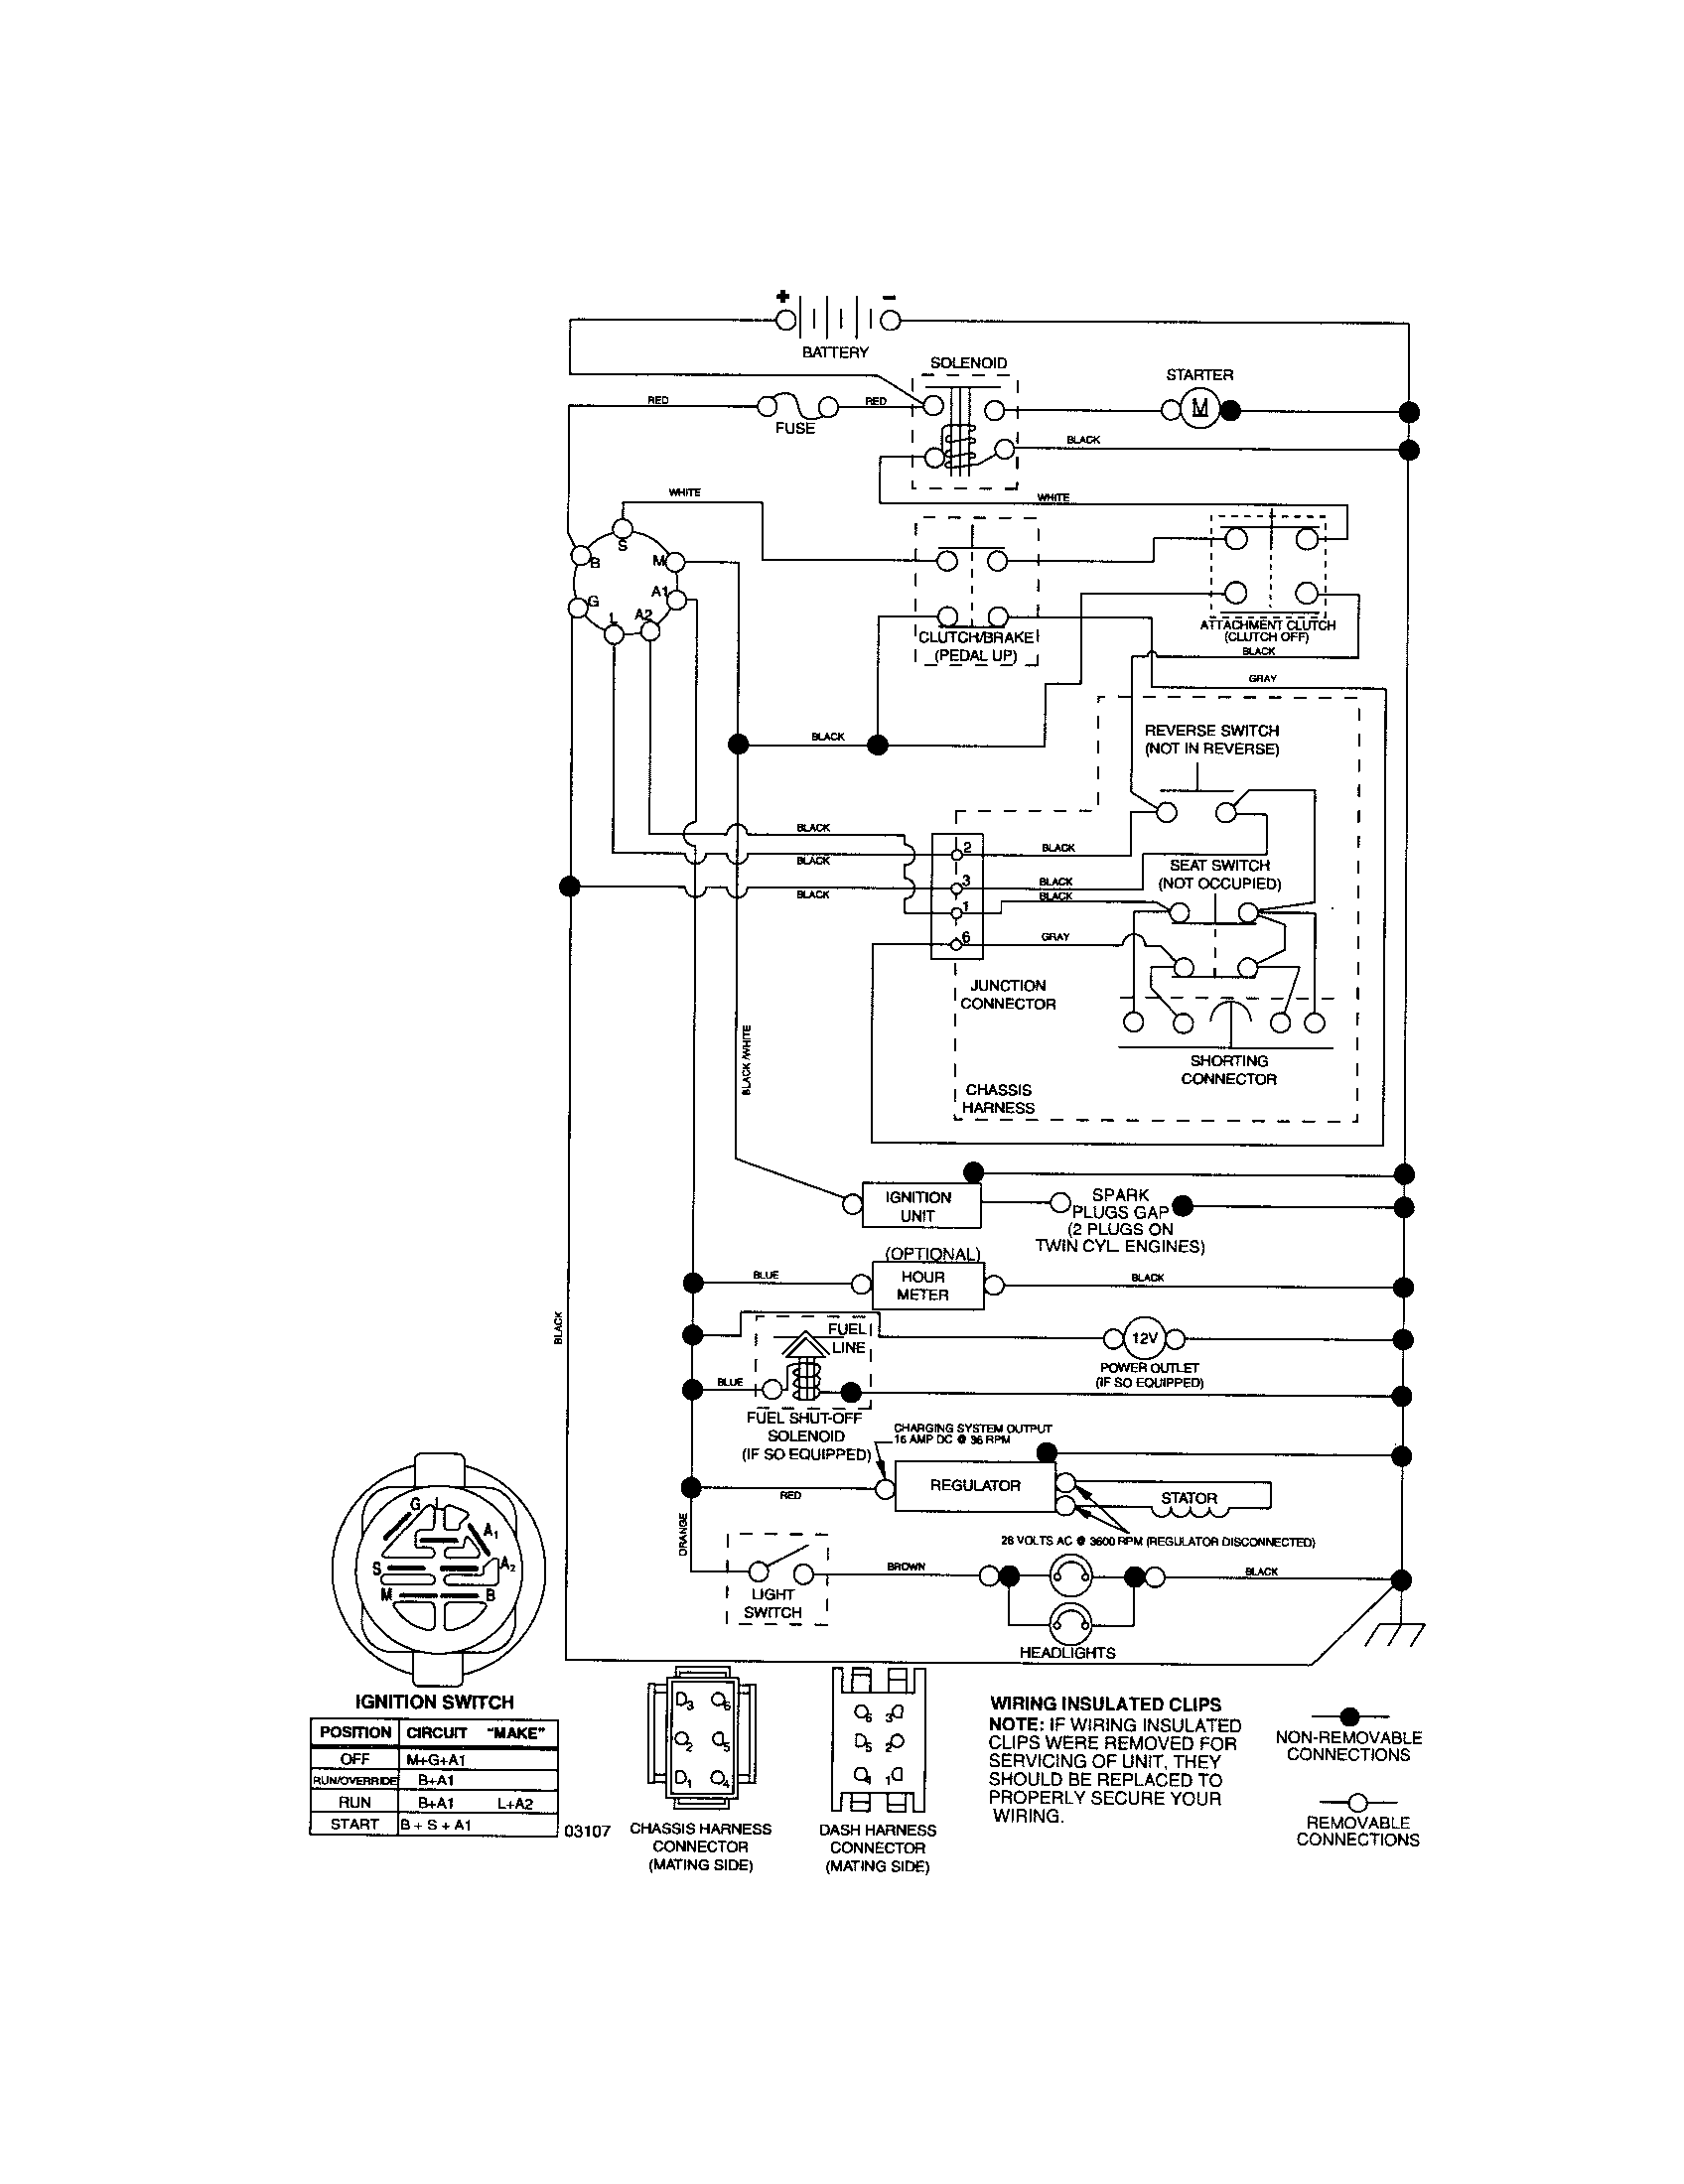 New Need Wiring Diagram #diagram #wiringdiagram #